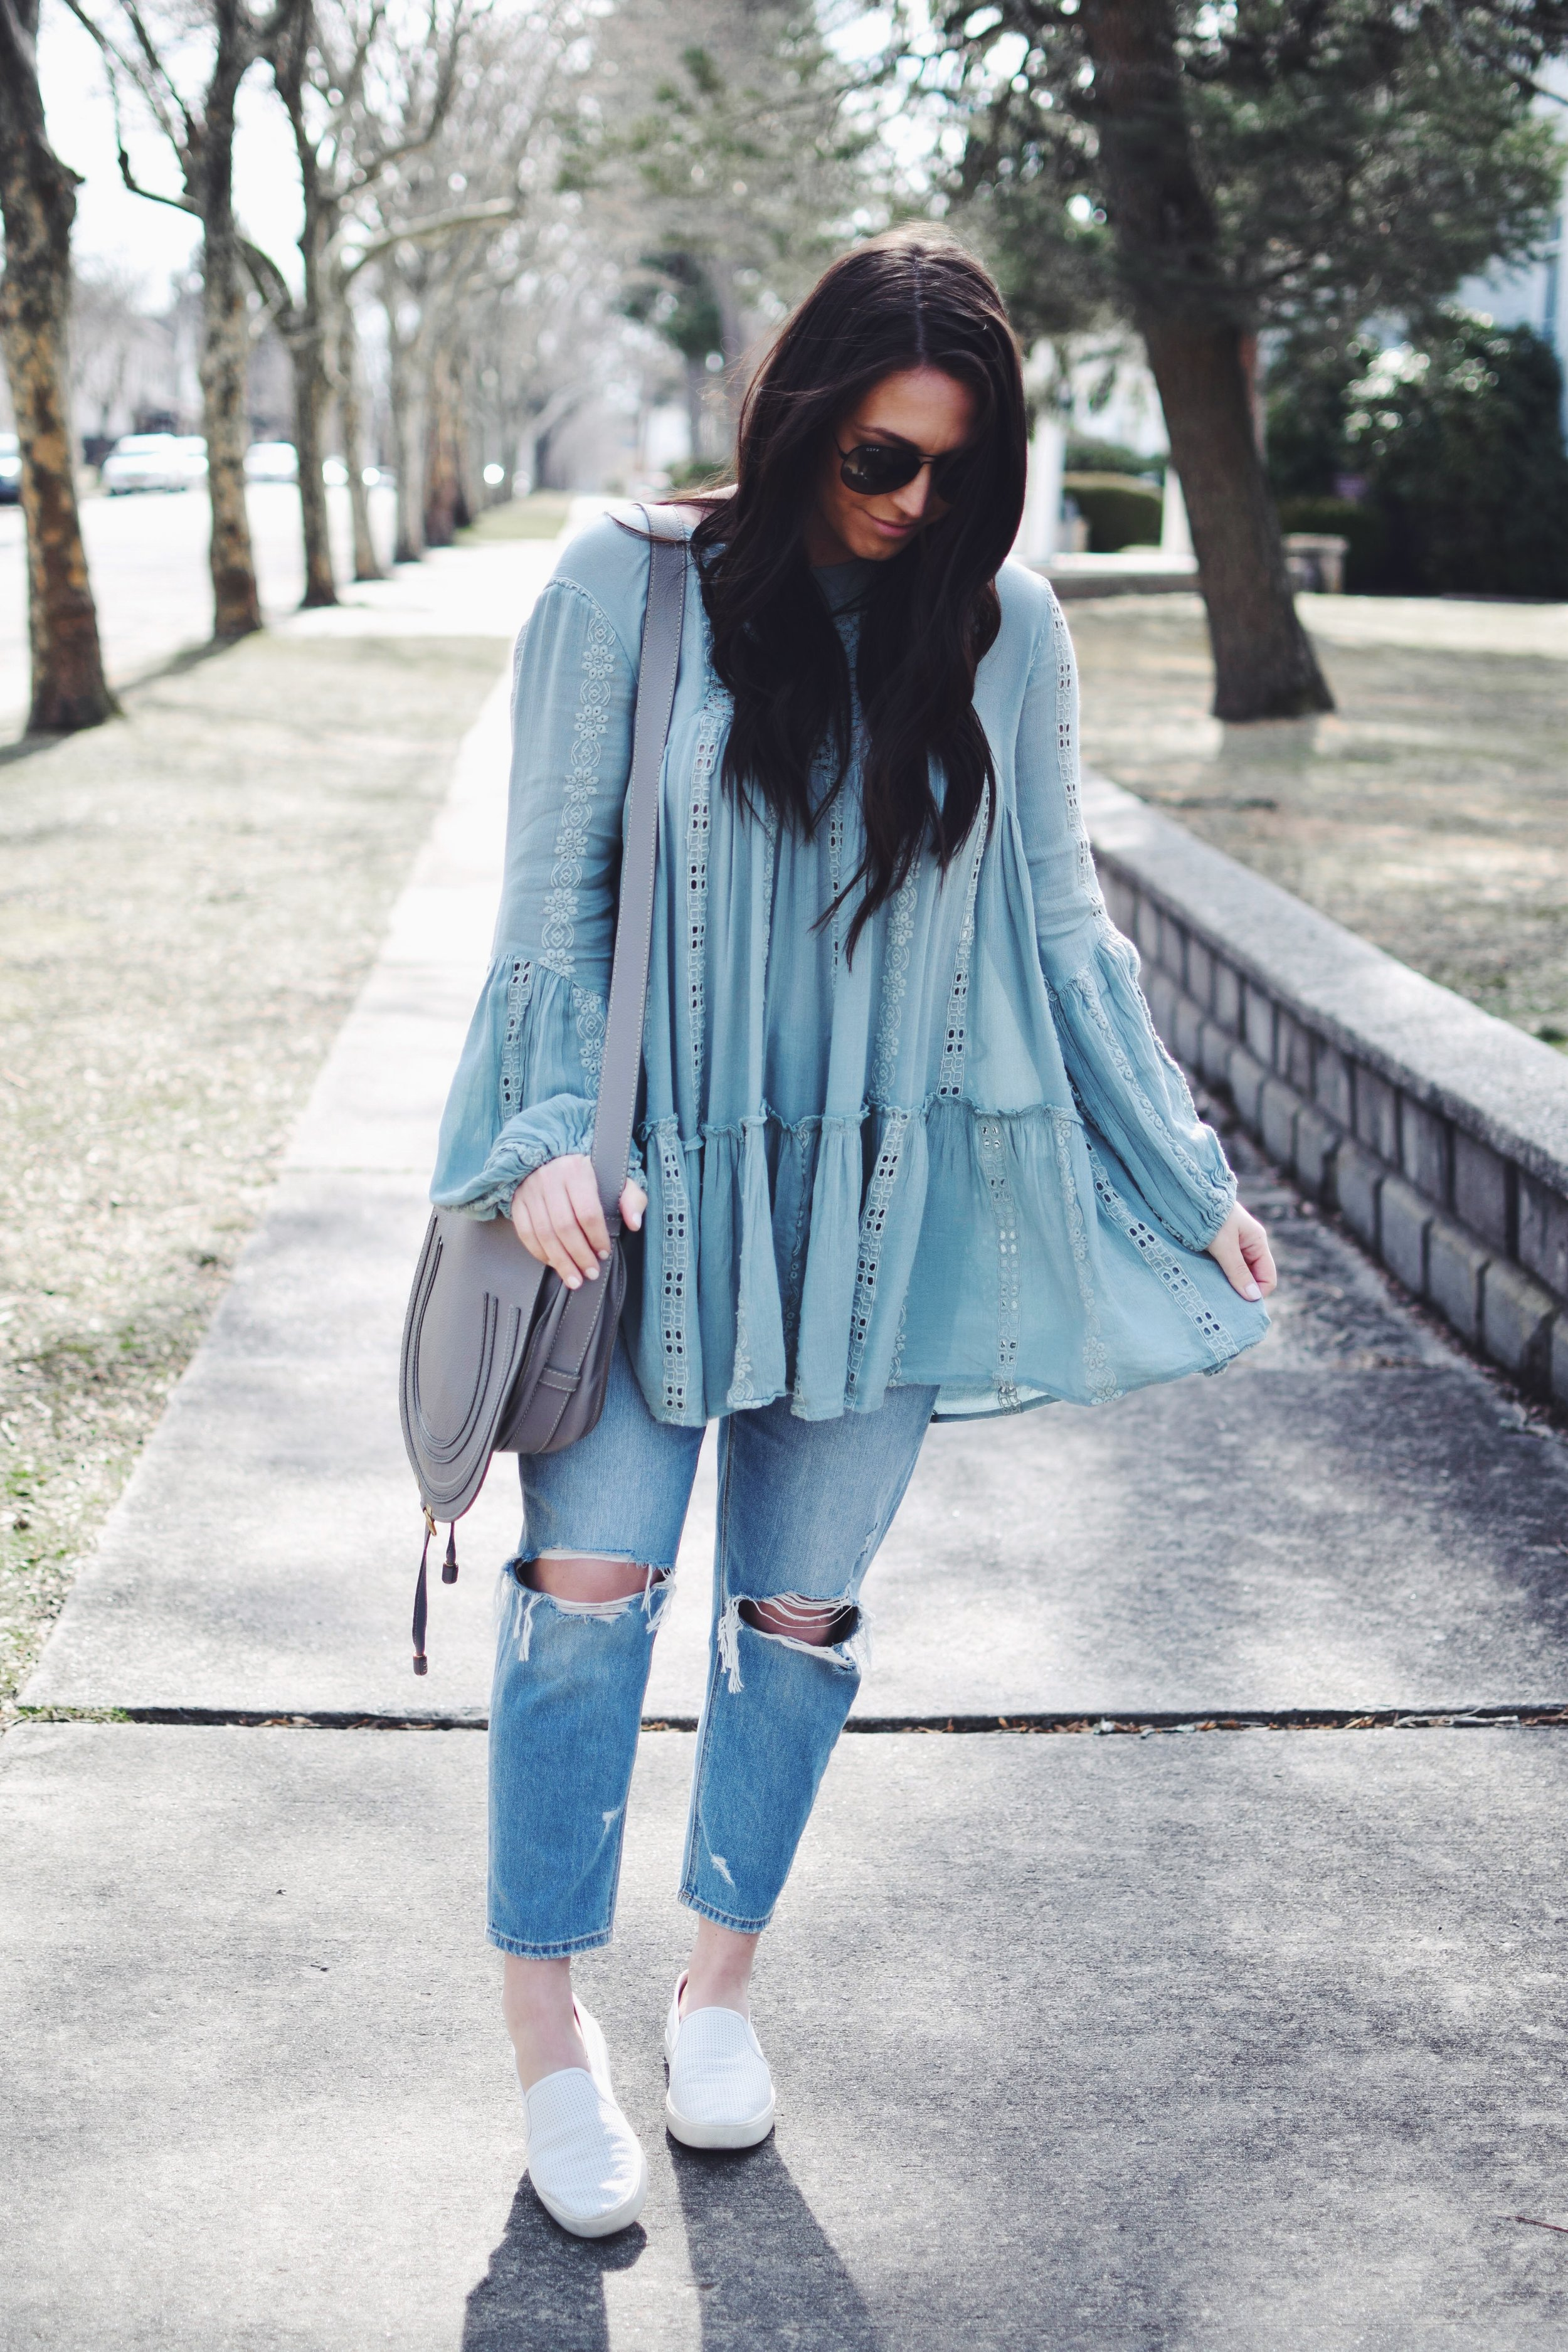 The Prettiest Tunic for Spring | Pine Barren Beauty | free people tunic, American eagle denim, distressed denim, spring outfit idea, spring outfit inspiration